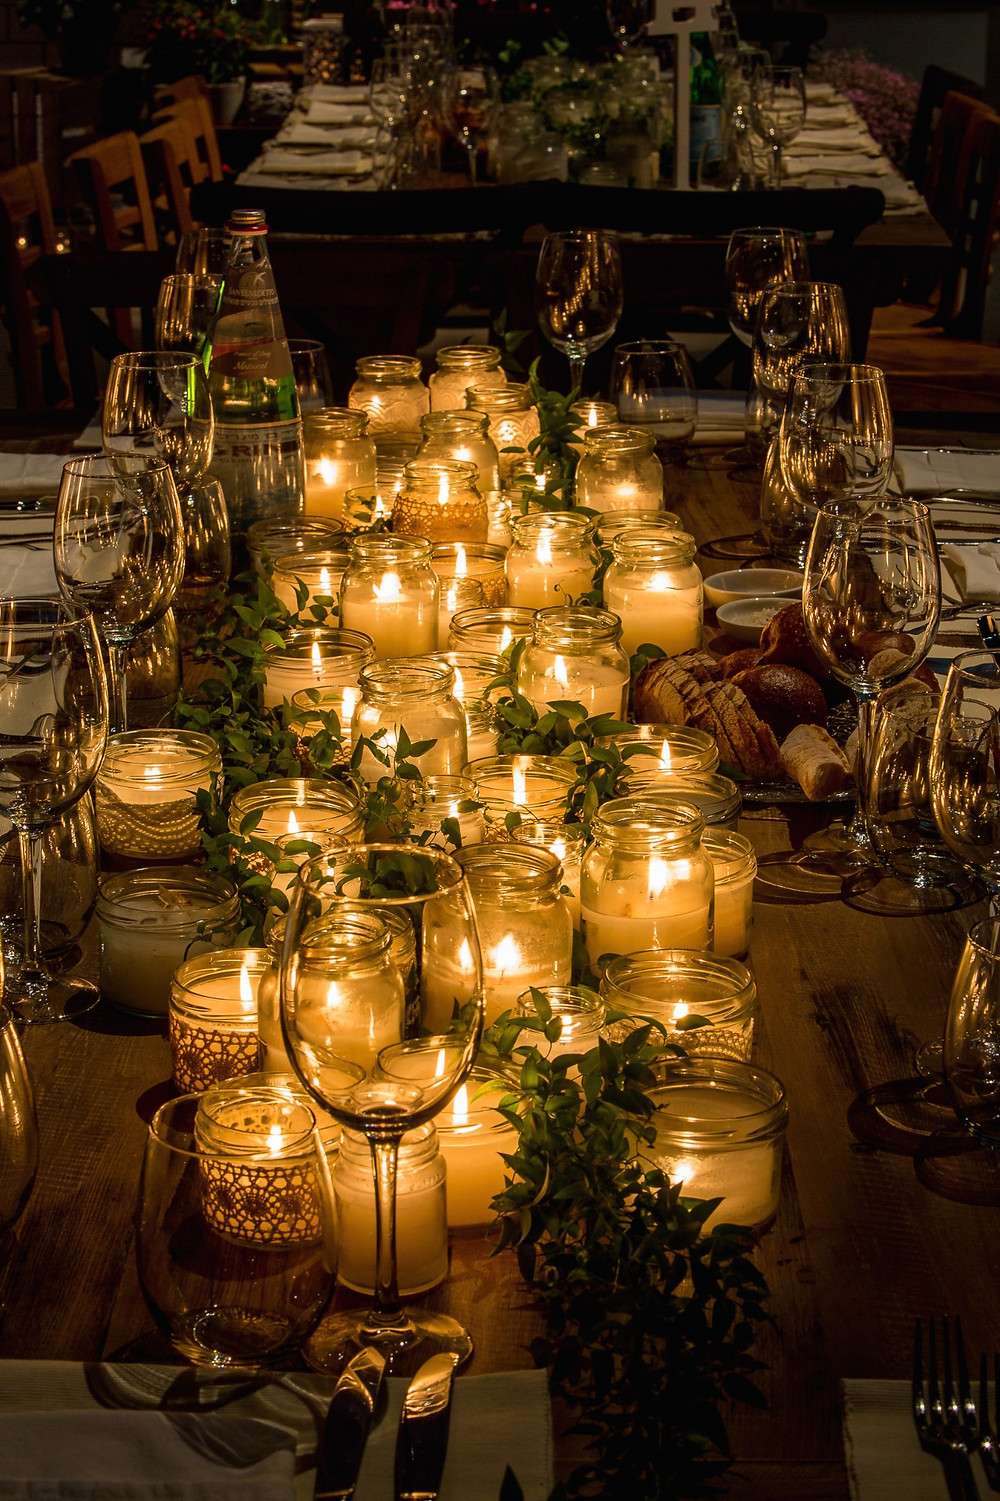 Mason Jar candles wrapped in lace and greenery for a rustic Seder table design